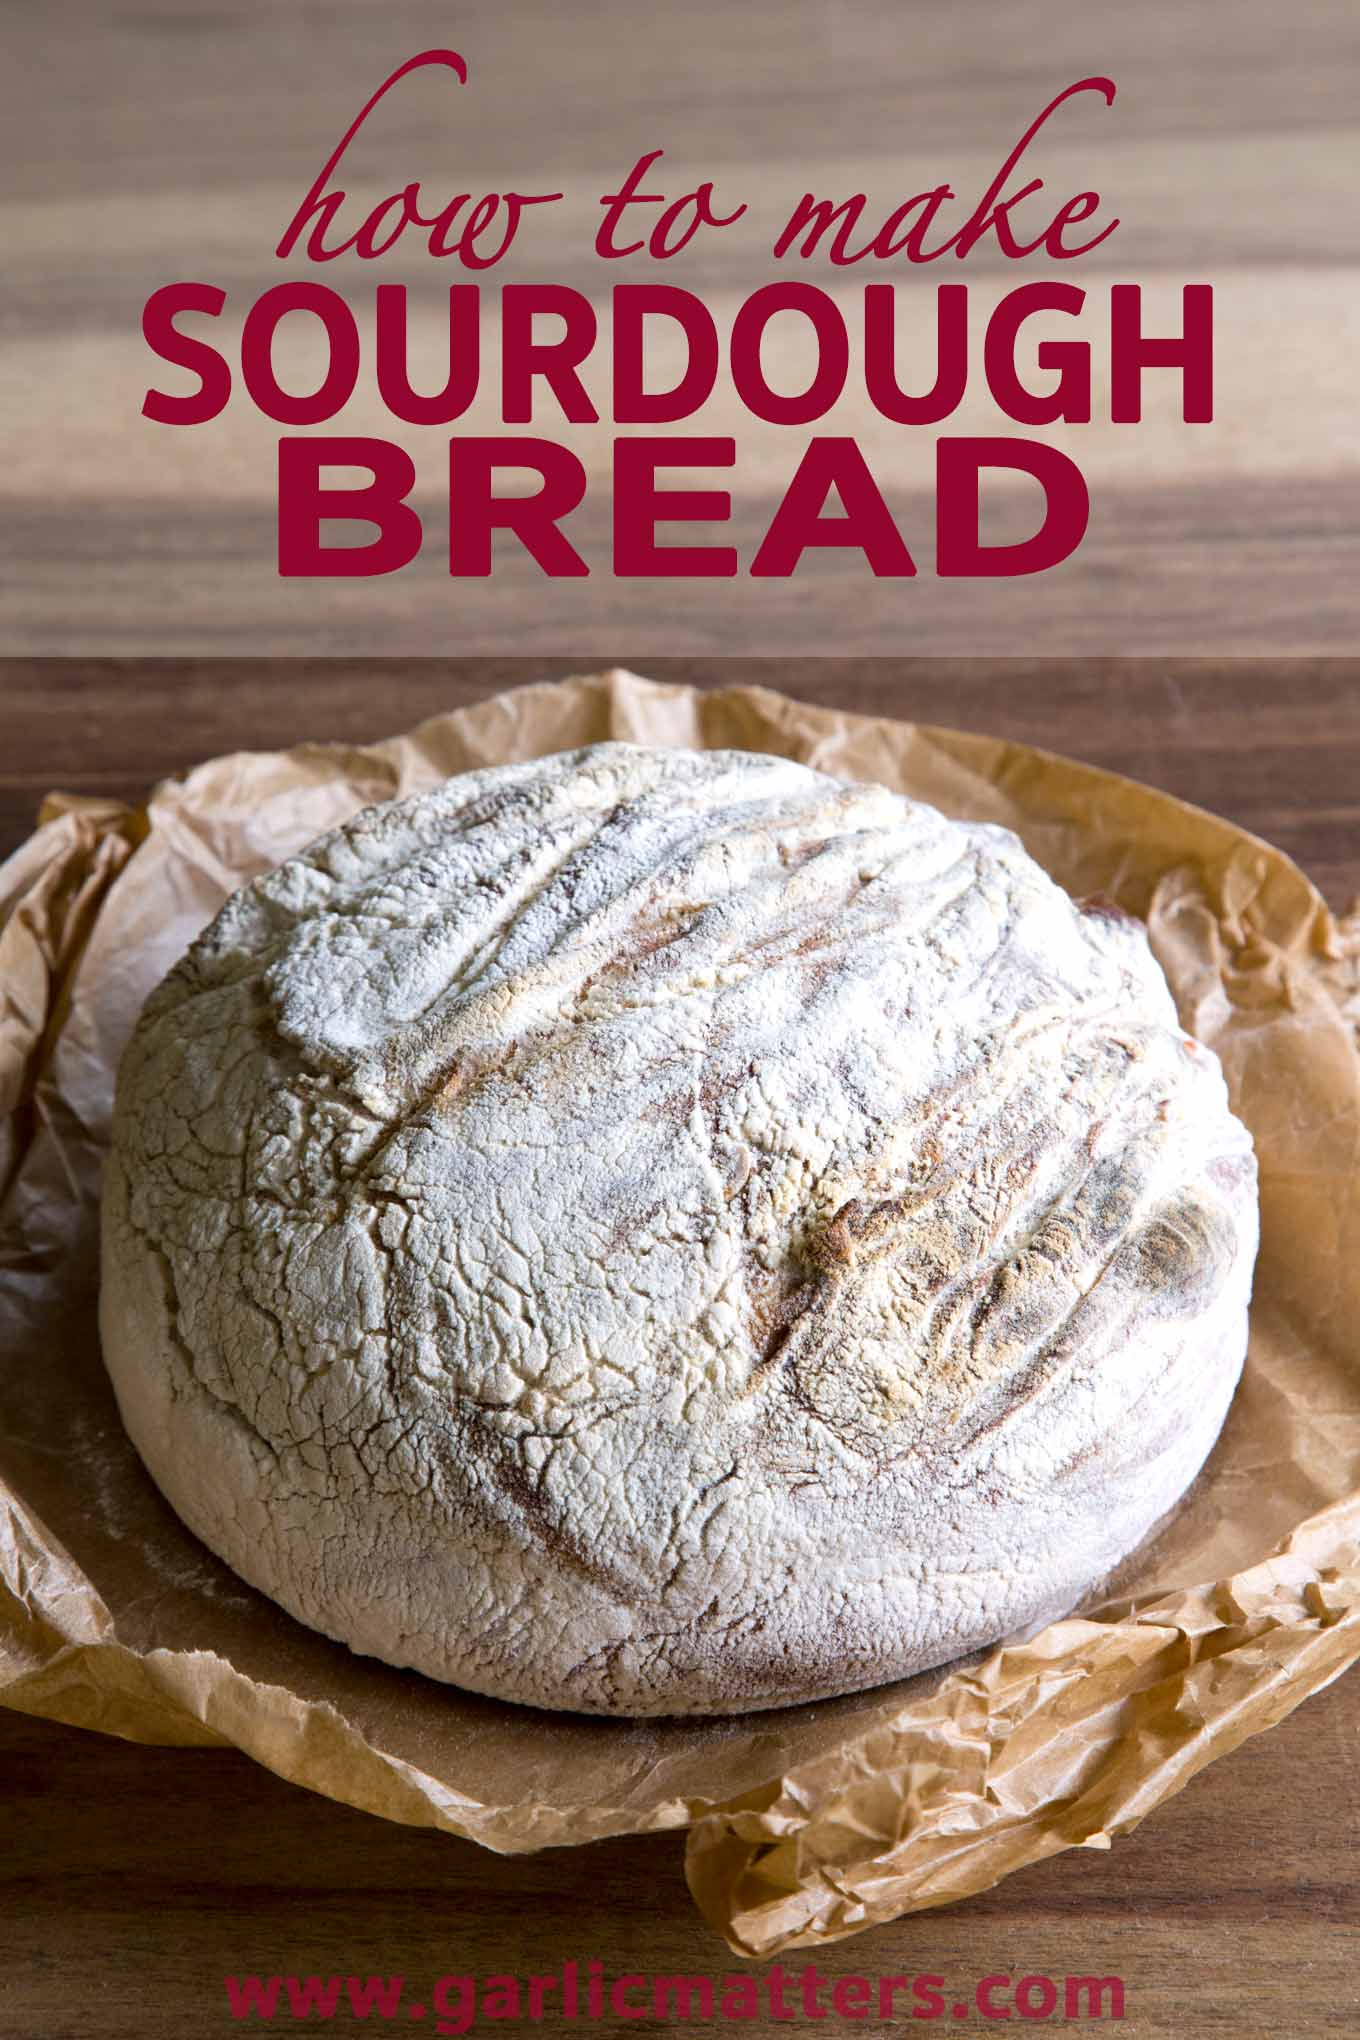 How to make sourdough bread with step by step instructions. Simple method to produce the most delicious, healthy sourdough bread.